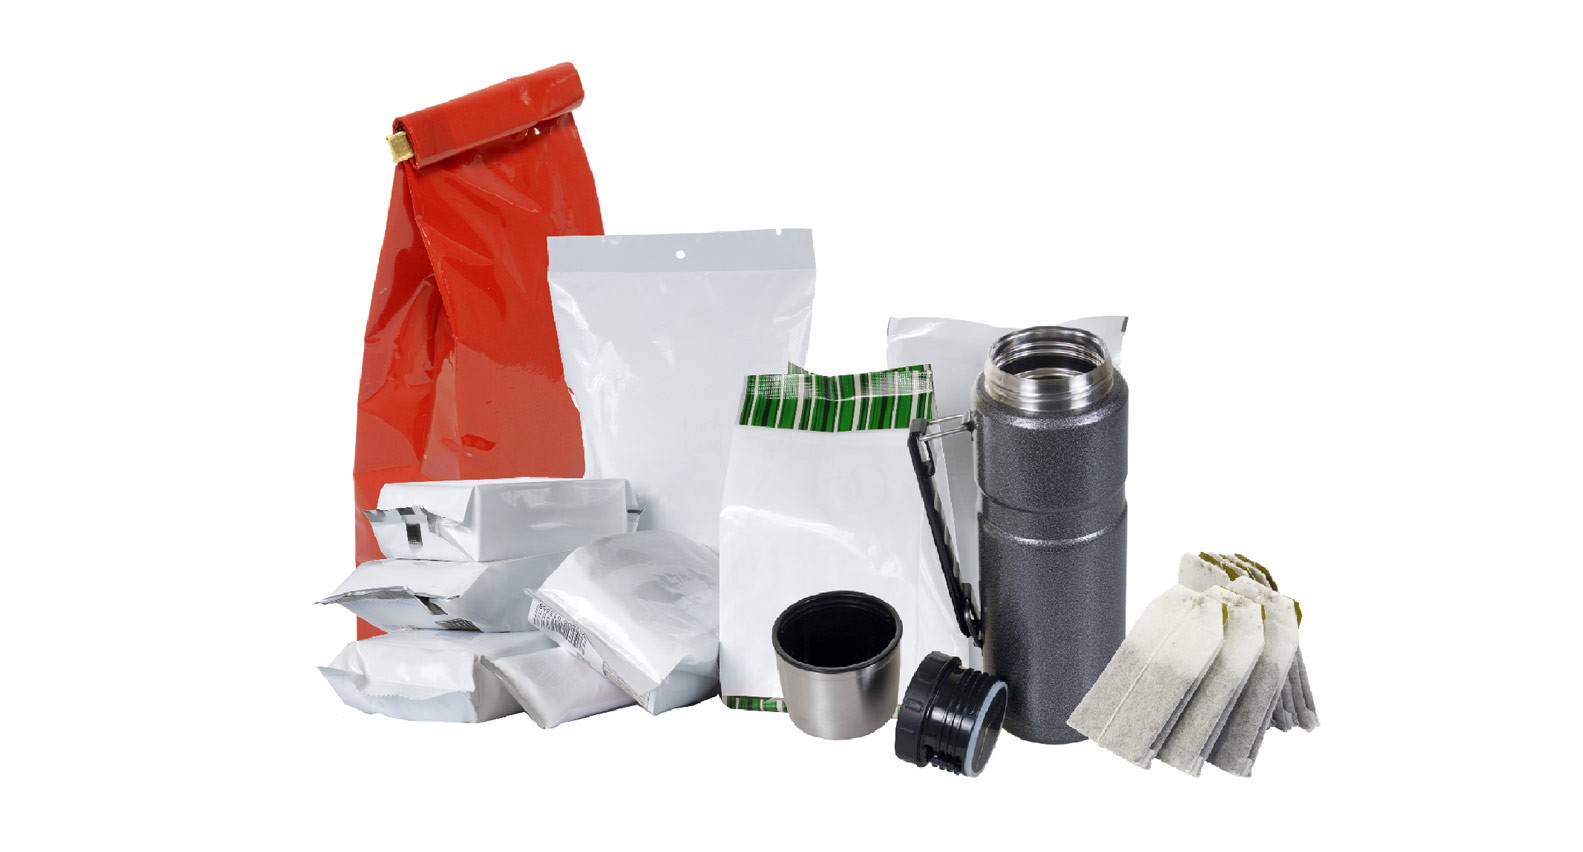 coffee and tea accessories zero waste box · terracycle - please send us your discarded coffee and tea accessories including coffeecanisters and bags coffee measures disc carousels filters carafes